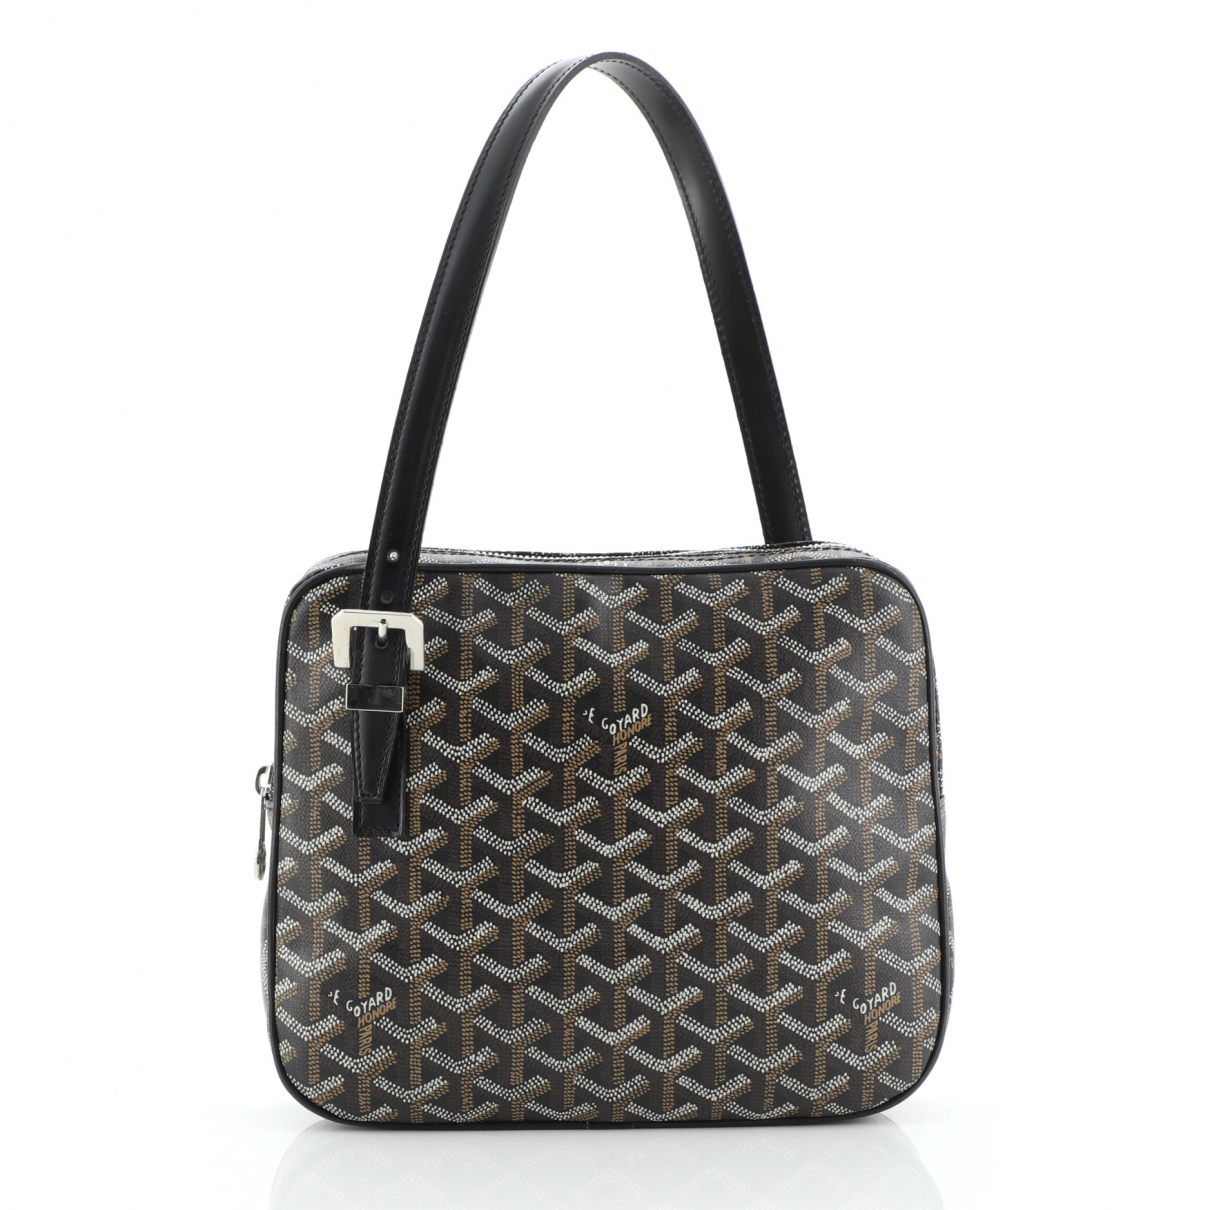 Goyard \N Black Leather handbag for Women \N